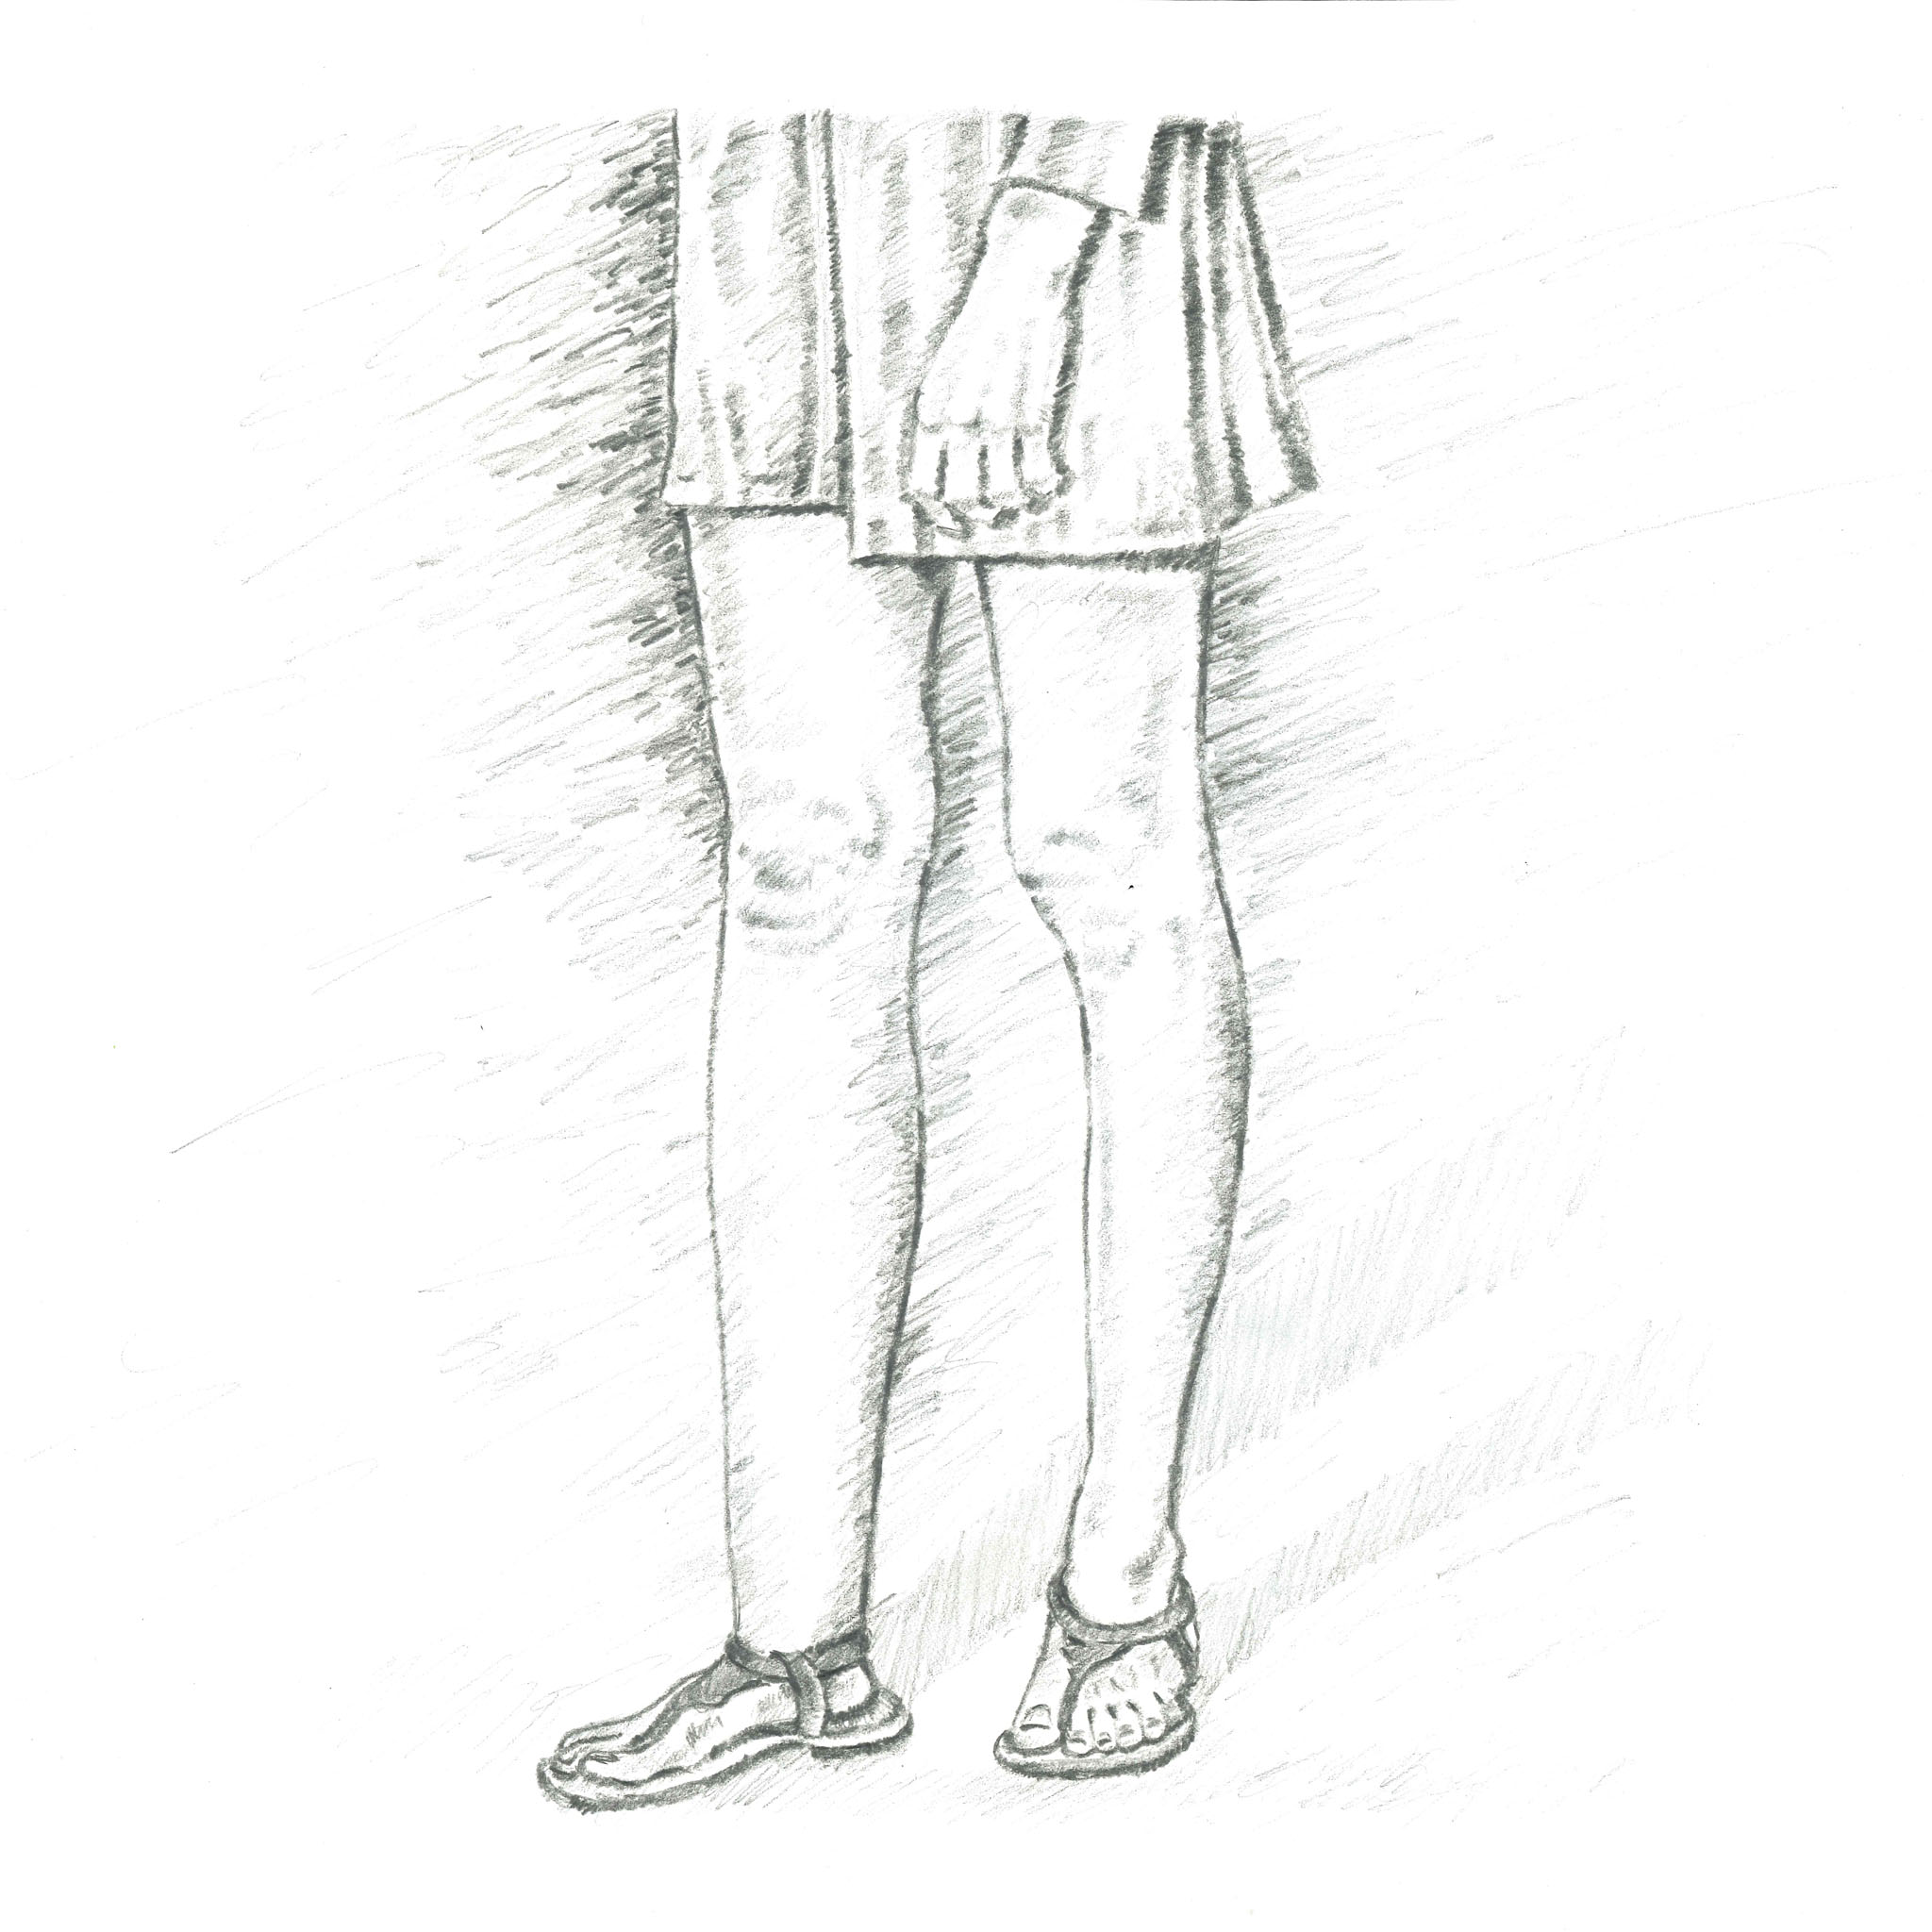 Sketch of woman's legs